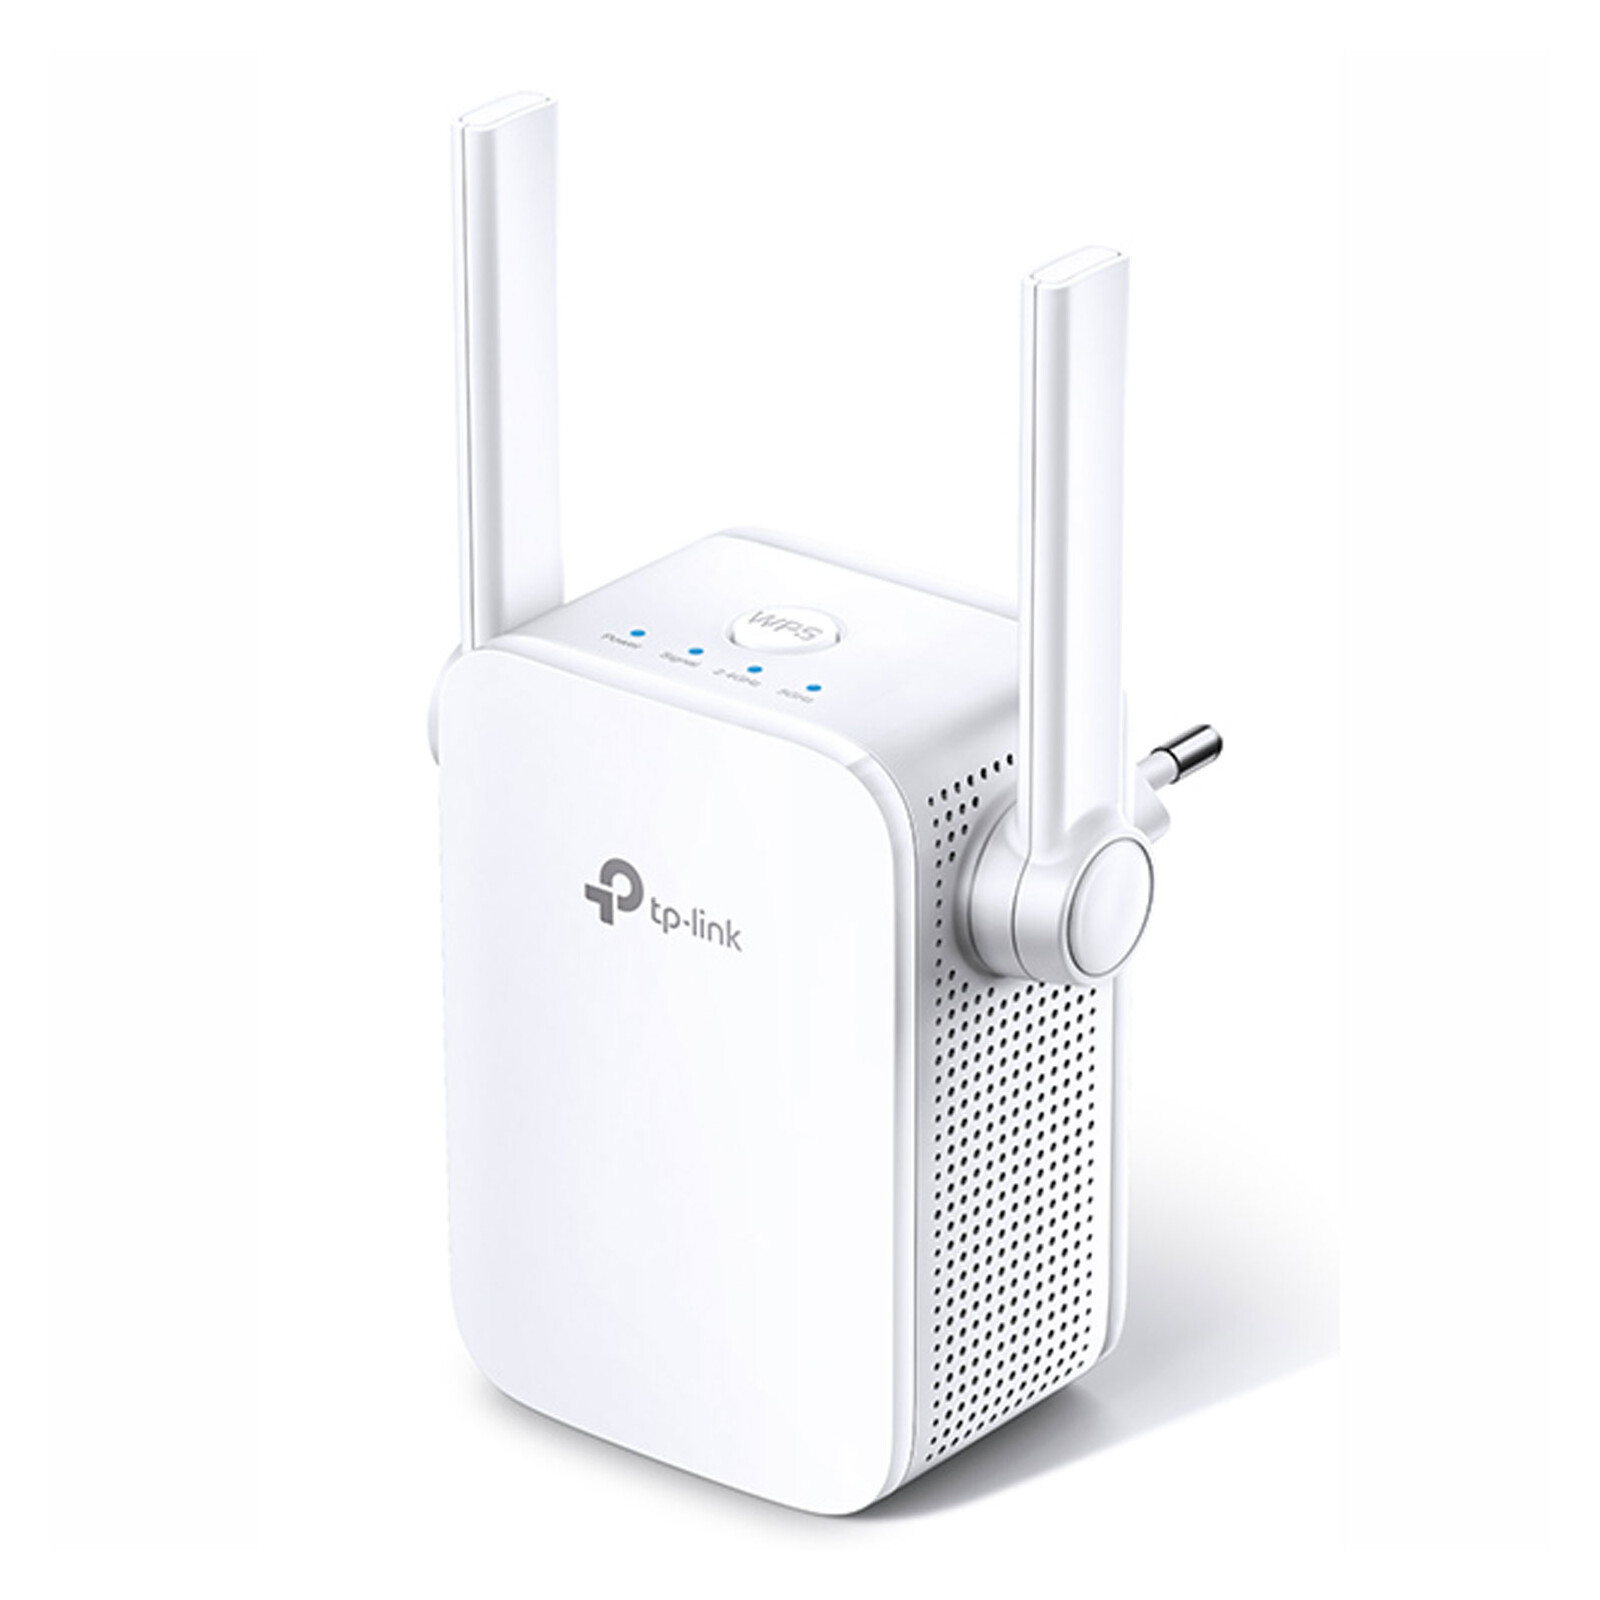 TP-Link AC1200 Dual Band Wireless Wall Plugged